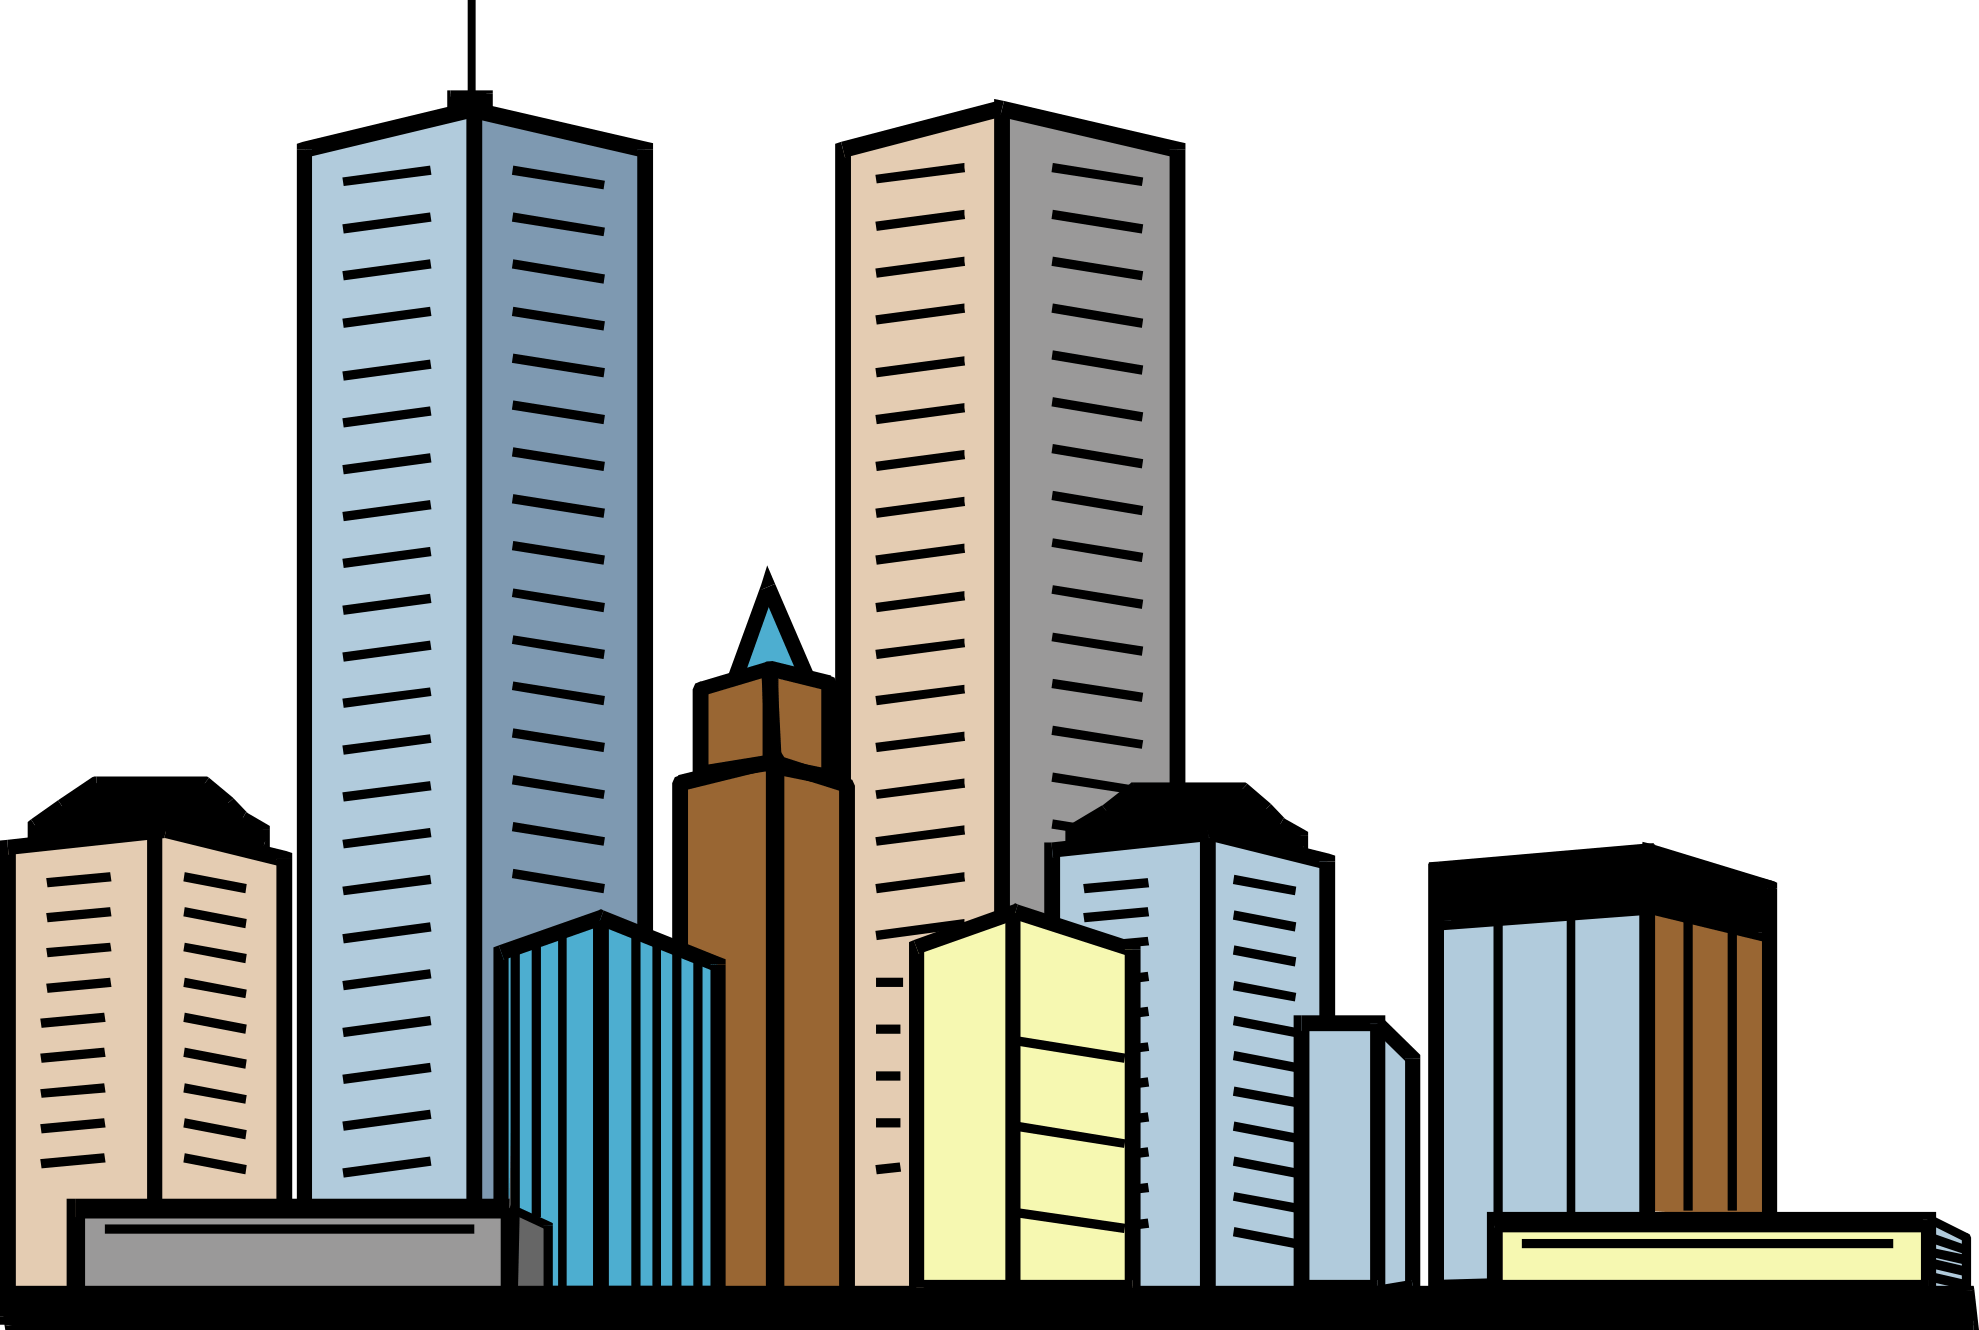 clipart transparent stock Coloring page kids pages. Skyscraper clipart corporate building.